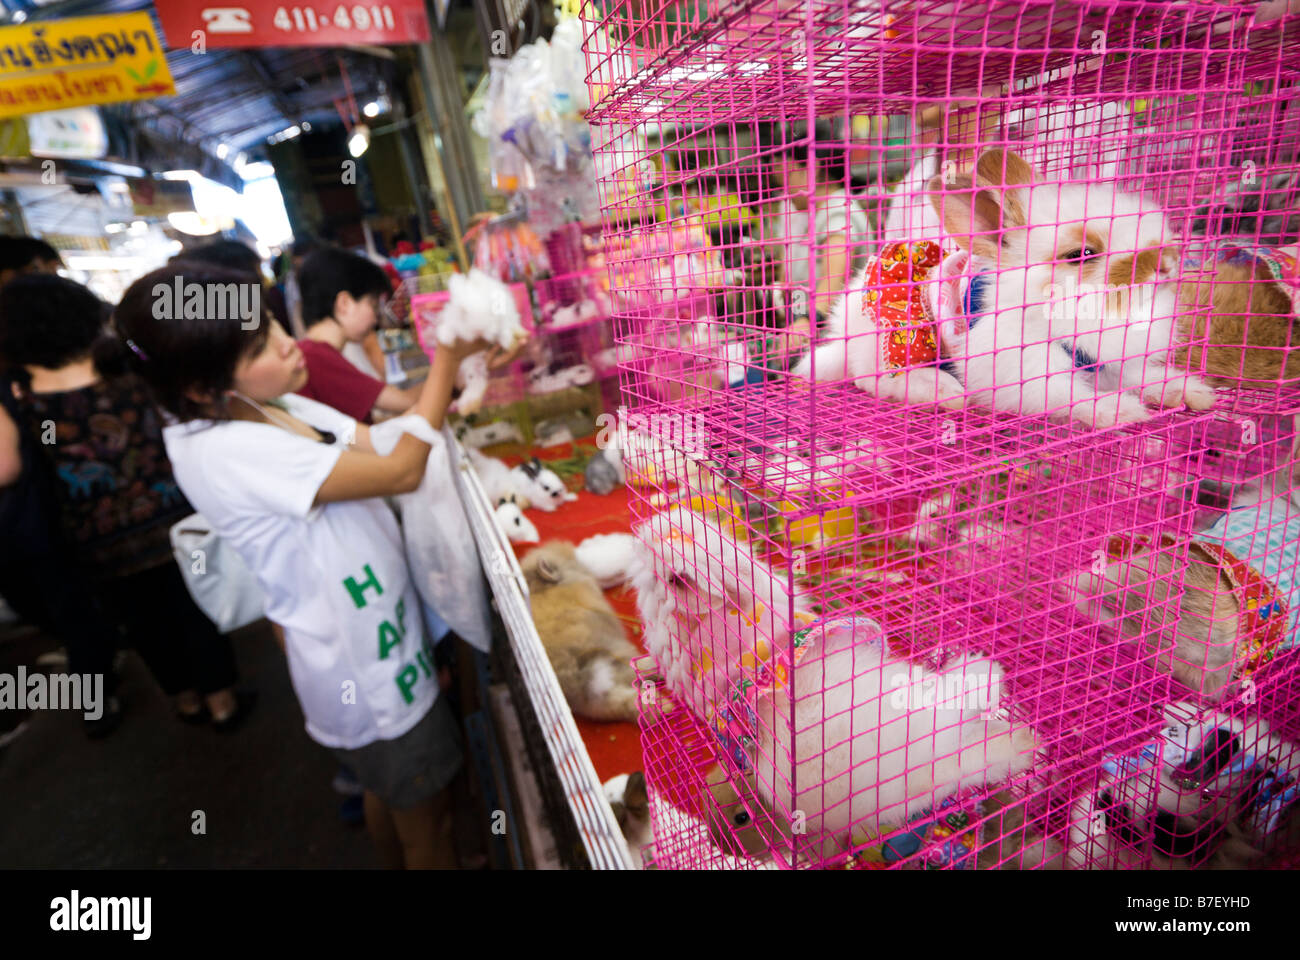 Caged rabbits wearing dresses for sale in a pet shop stall at Chatuchak Weekend Market in Bangkok Thailand - Stock Image